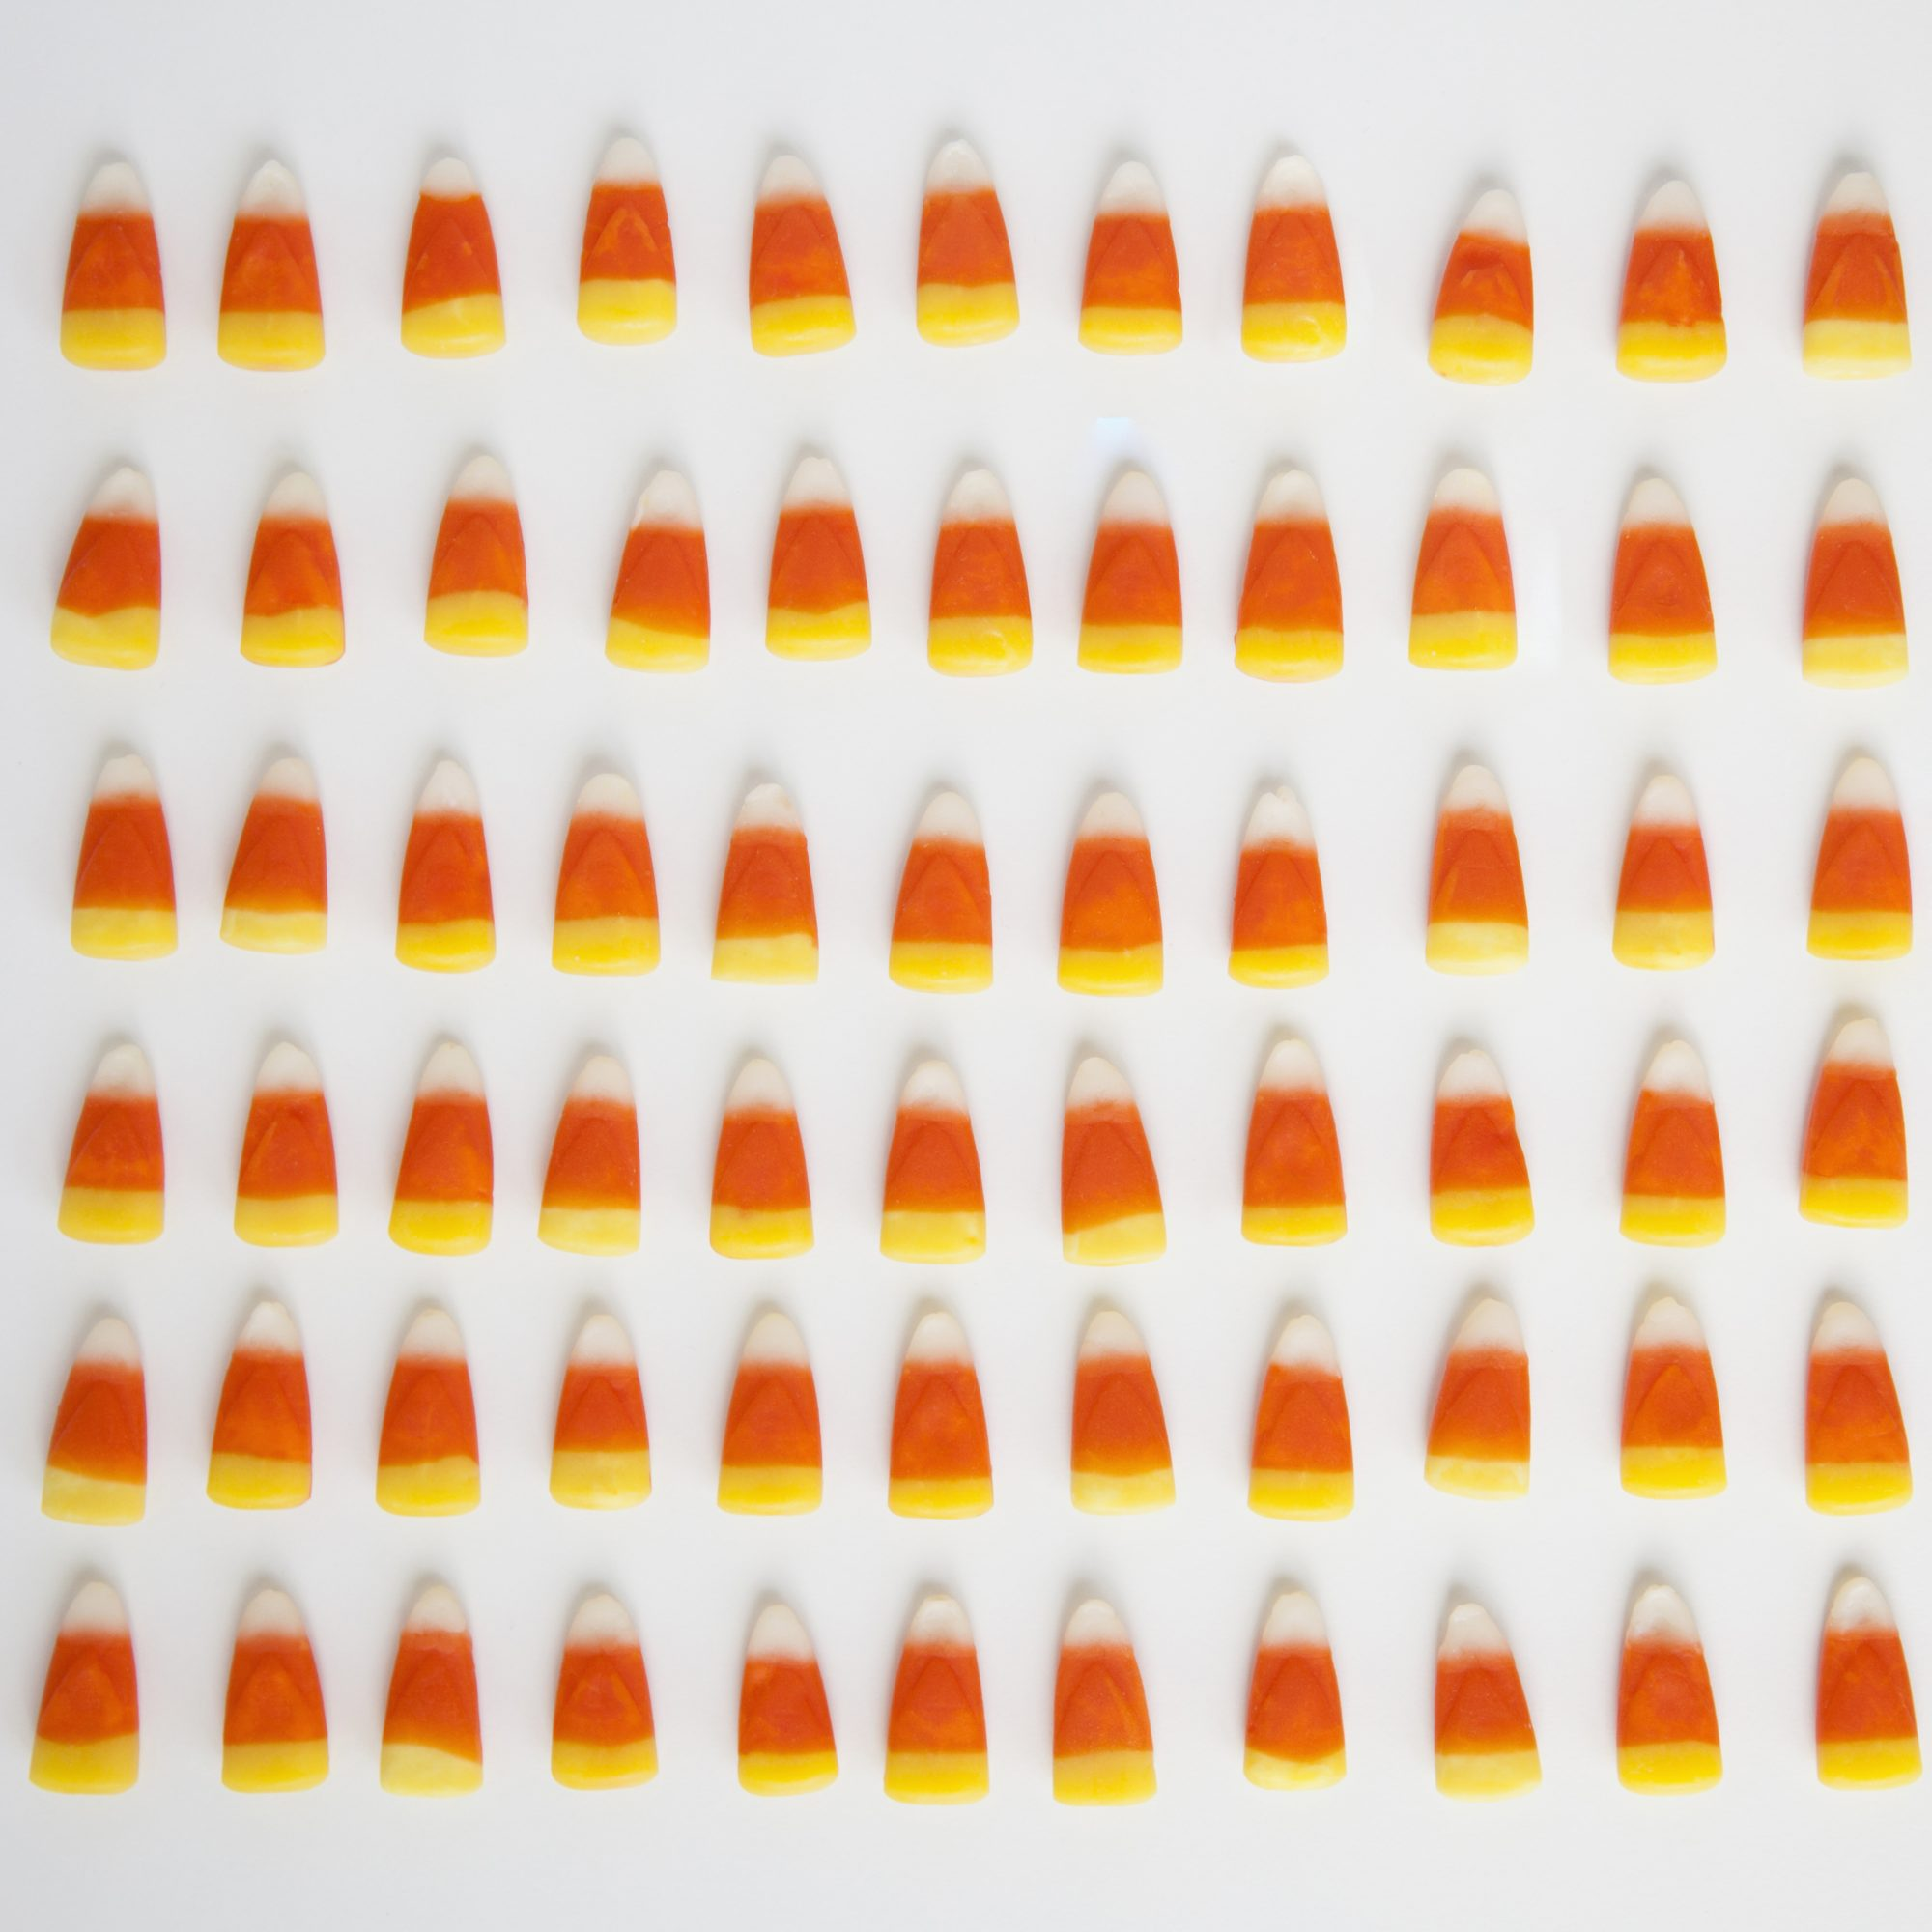 Candy Corn pattern Getty 8/20/20